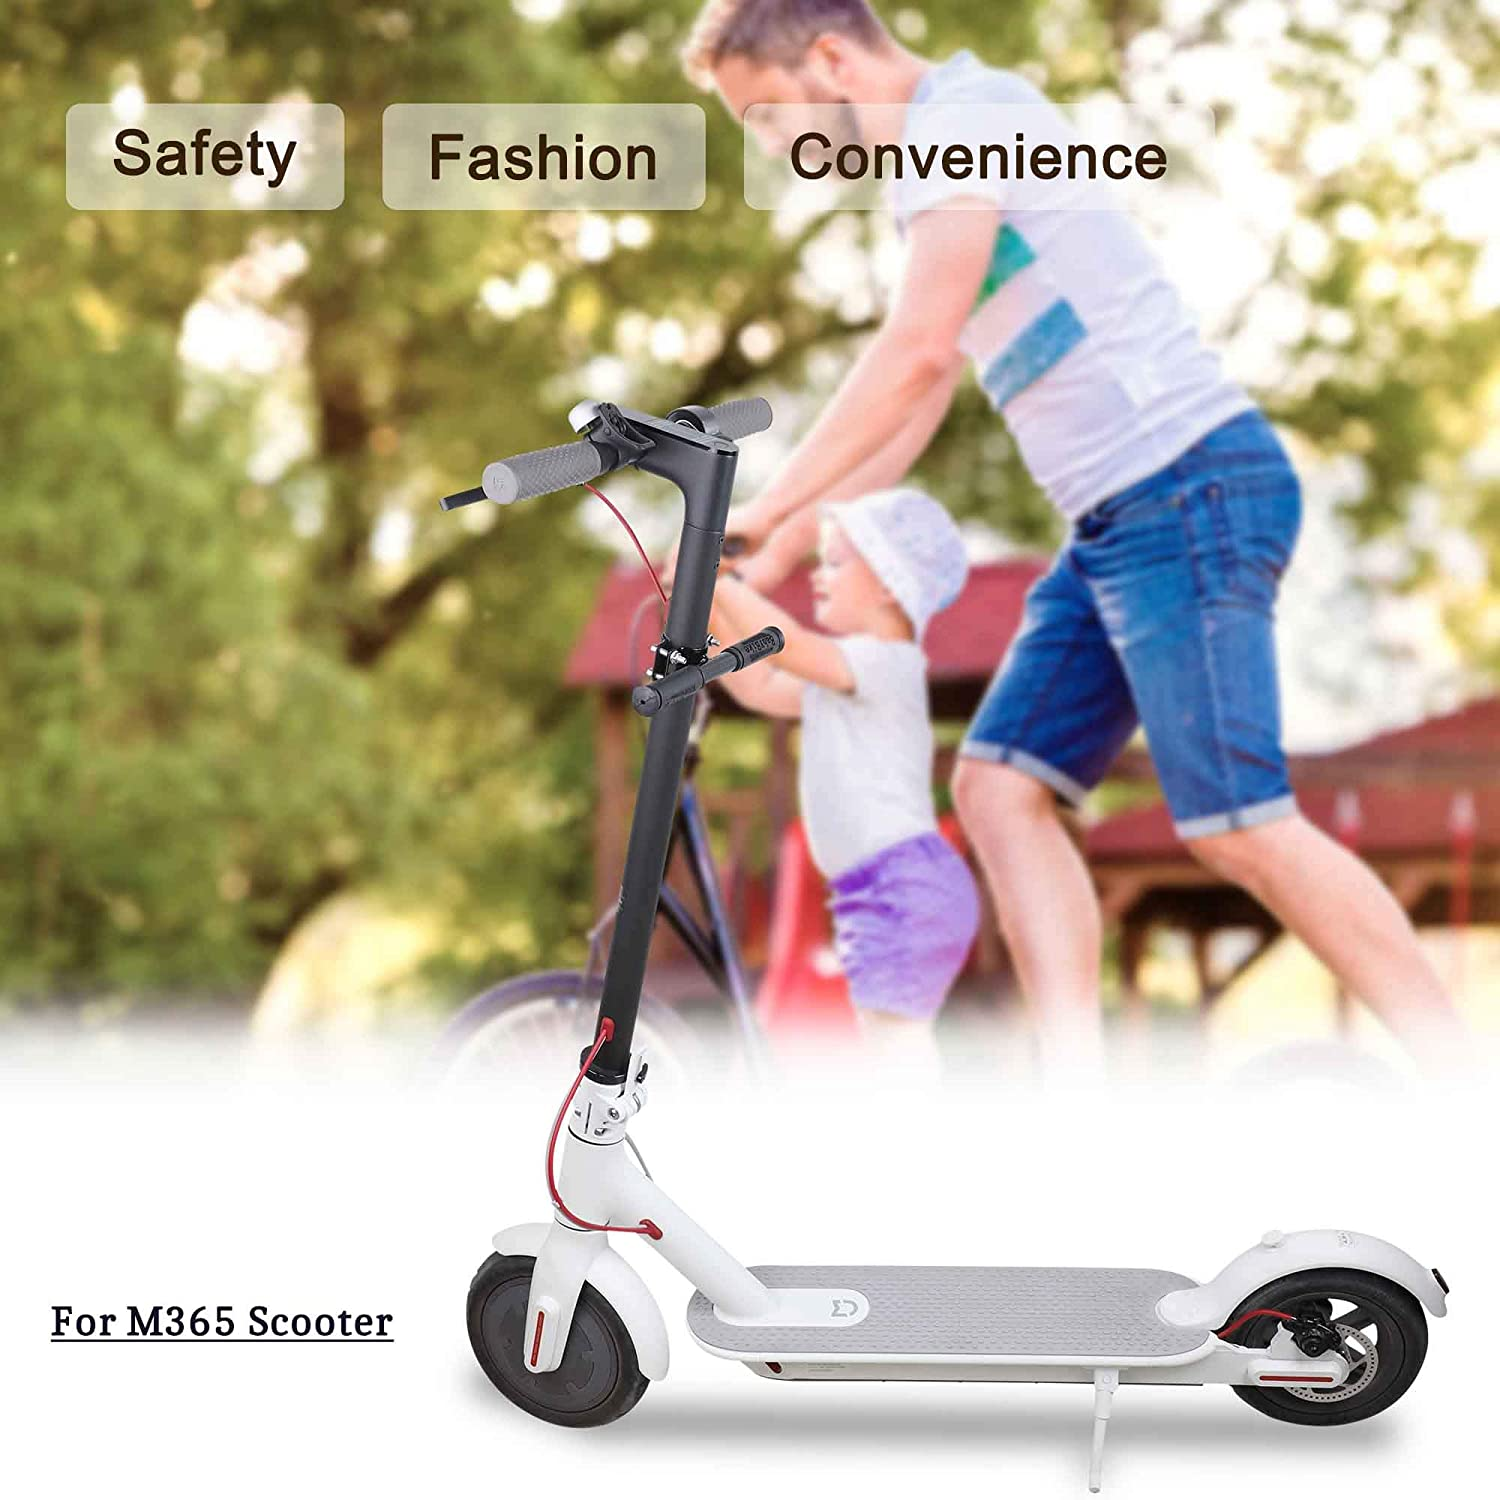 TOMALL Scooter Childrens Handlebar Adjustable Grip Bar Safe Holder Kids Handrail for Xiaomi M365 Scooter